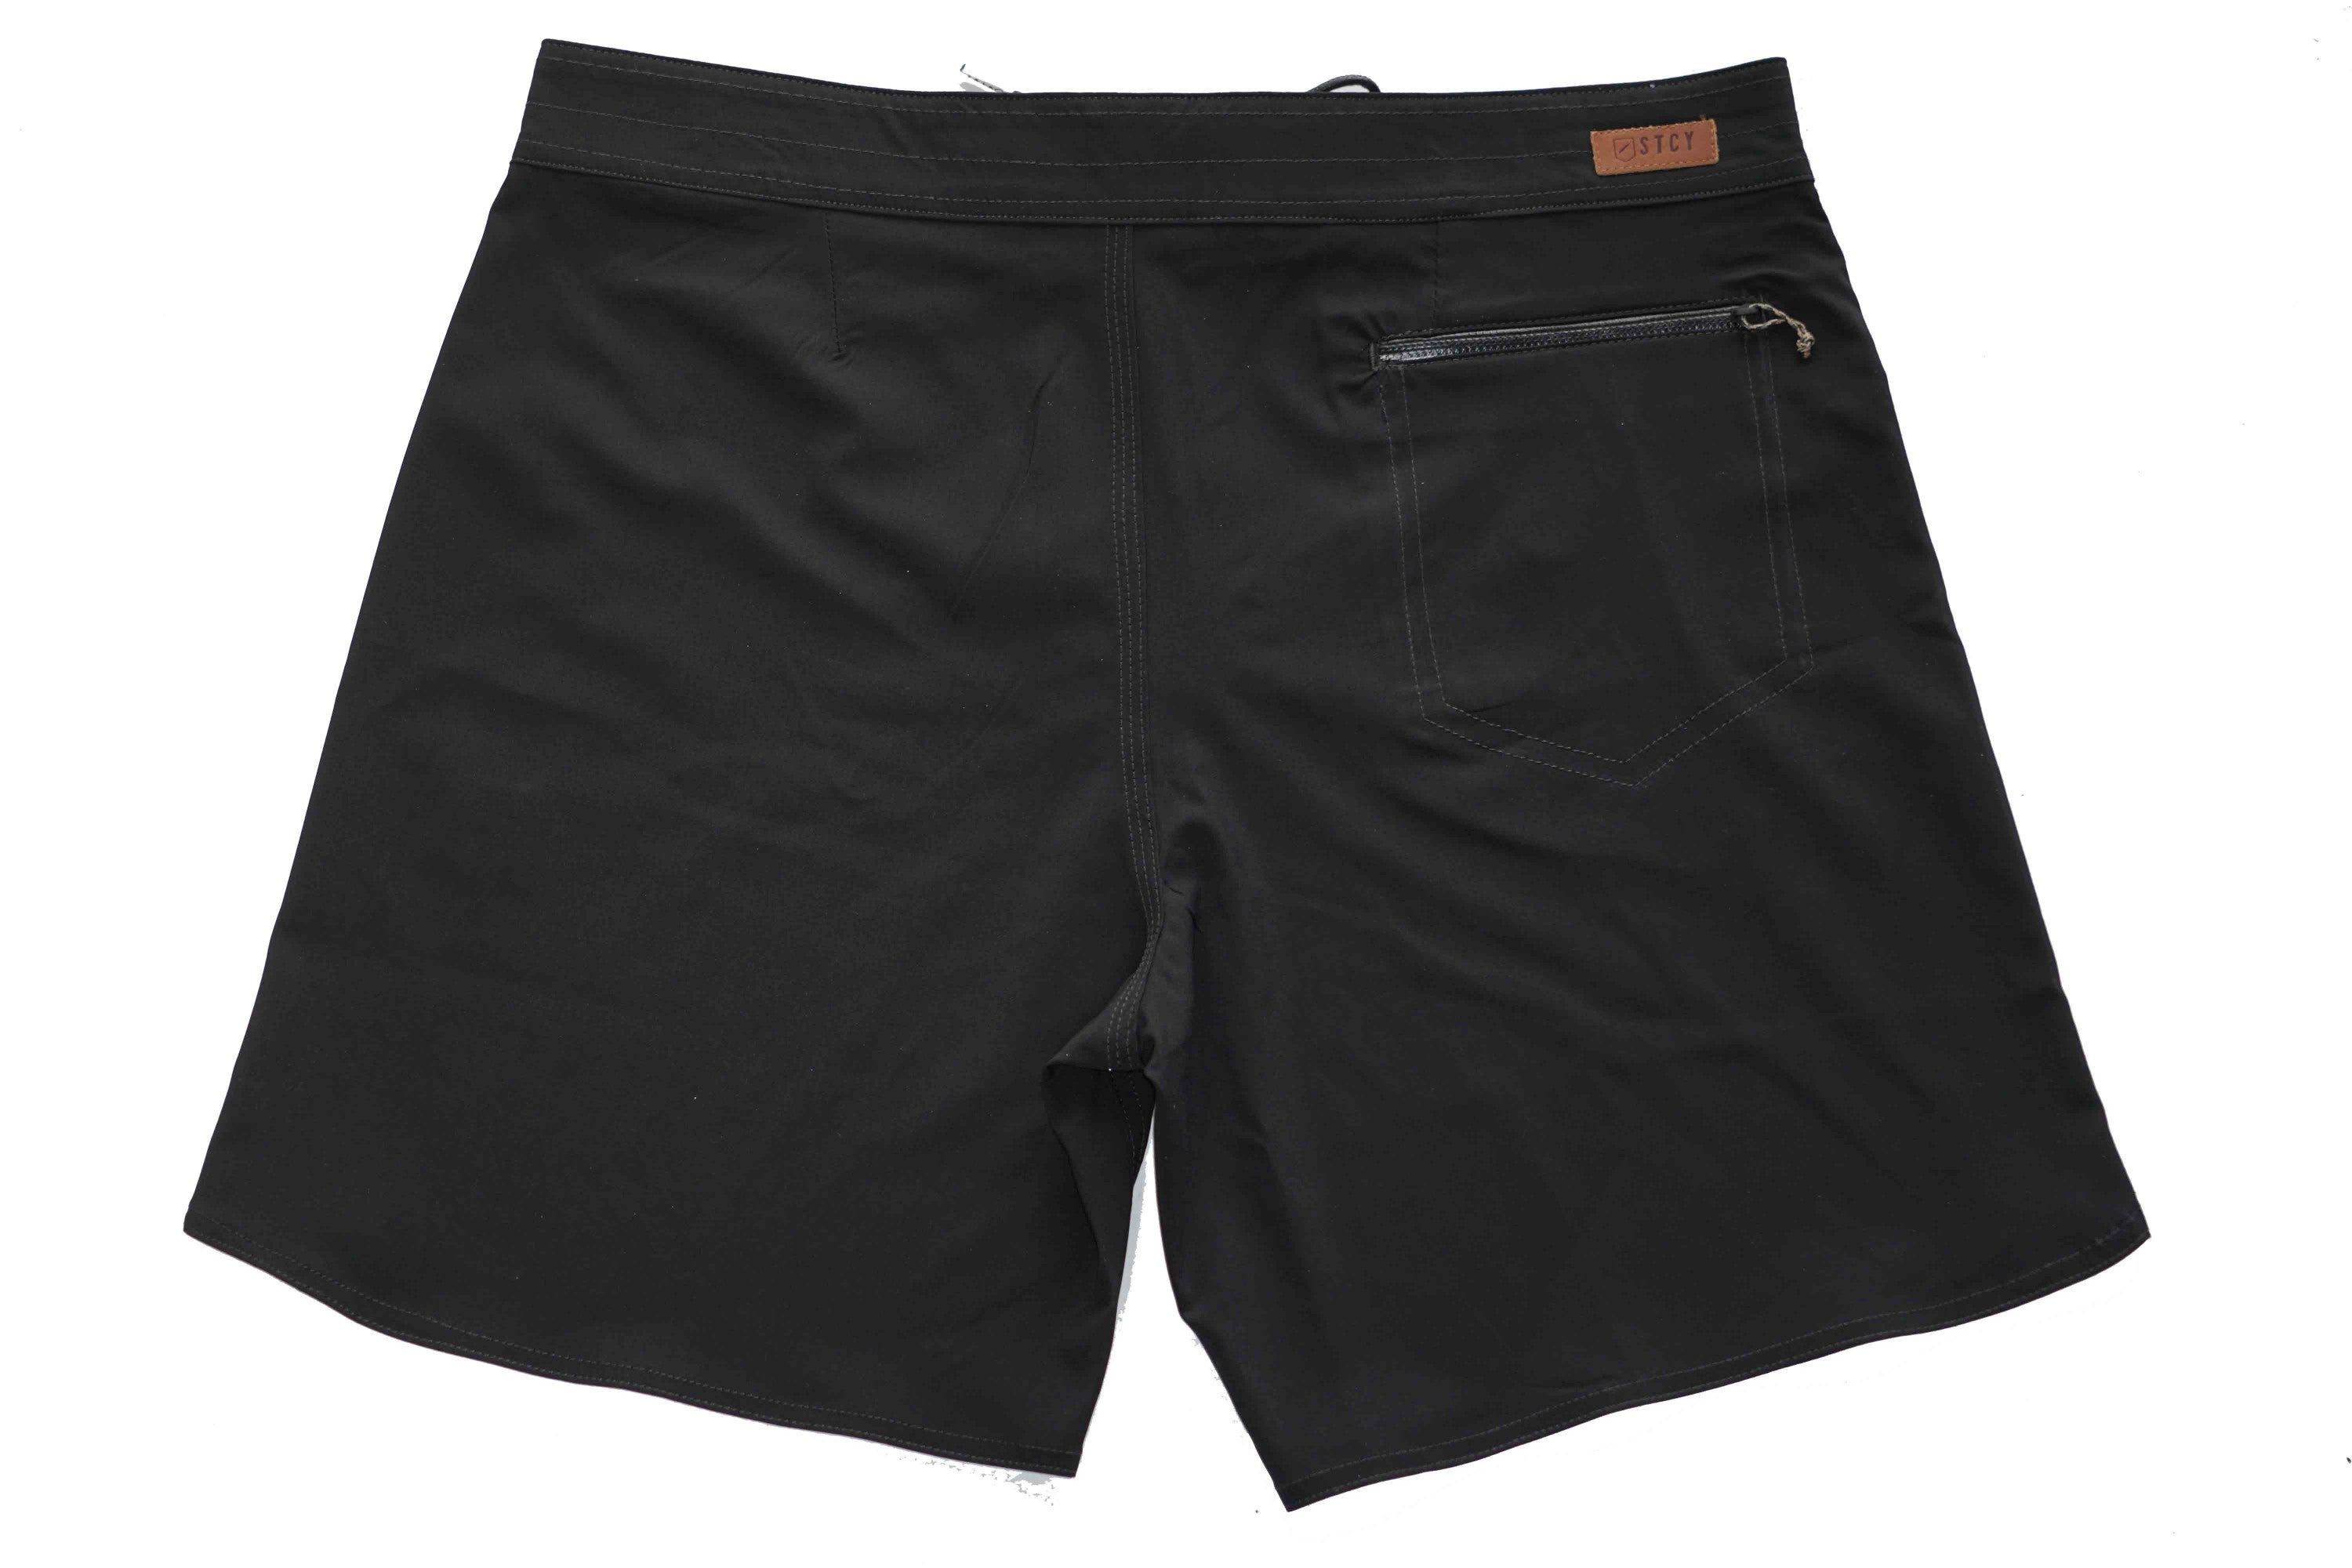 "FOUNDATION BOARDSHORT 19"" - BLACK"